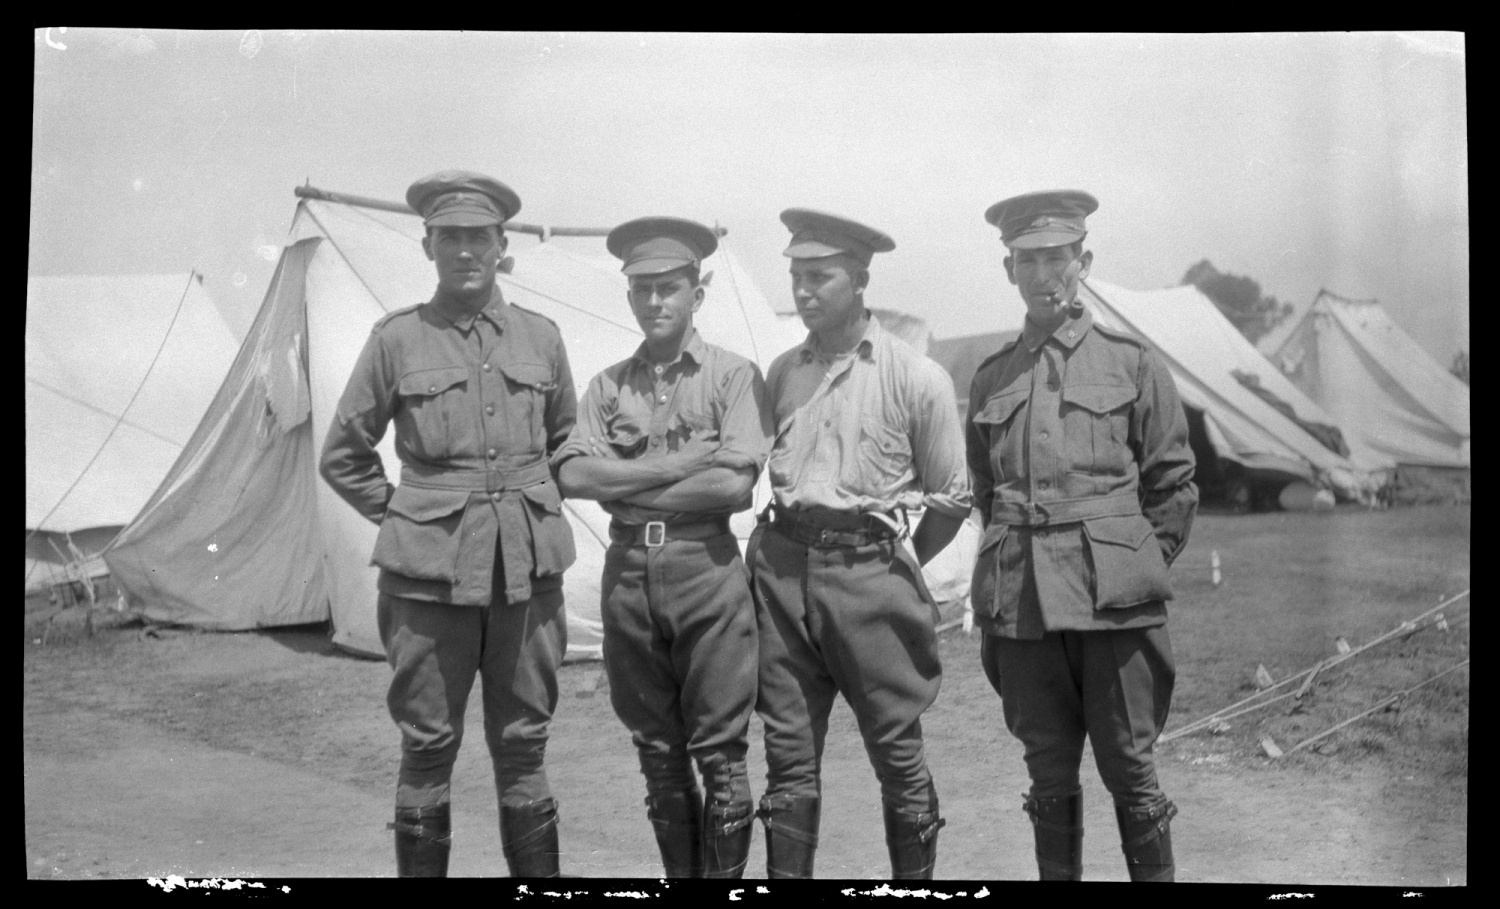 Four men in uniform standing outdoors with tents in background.